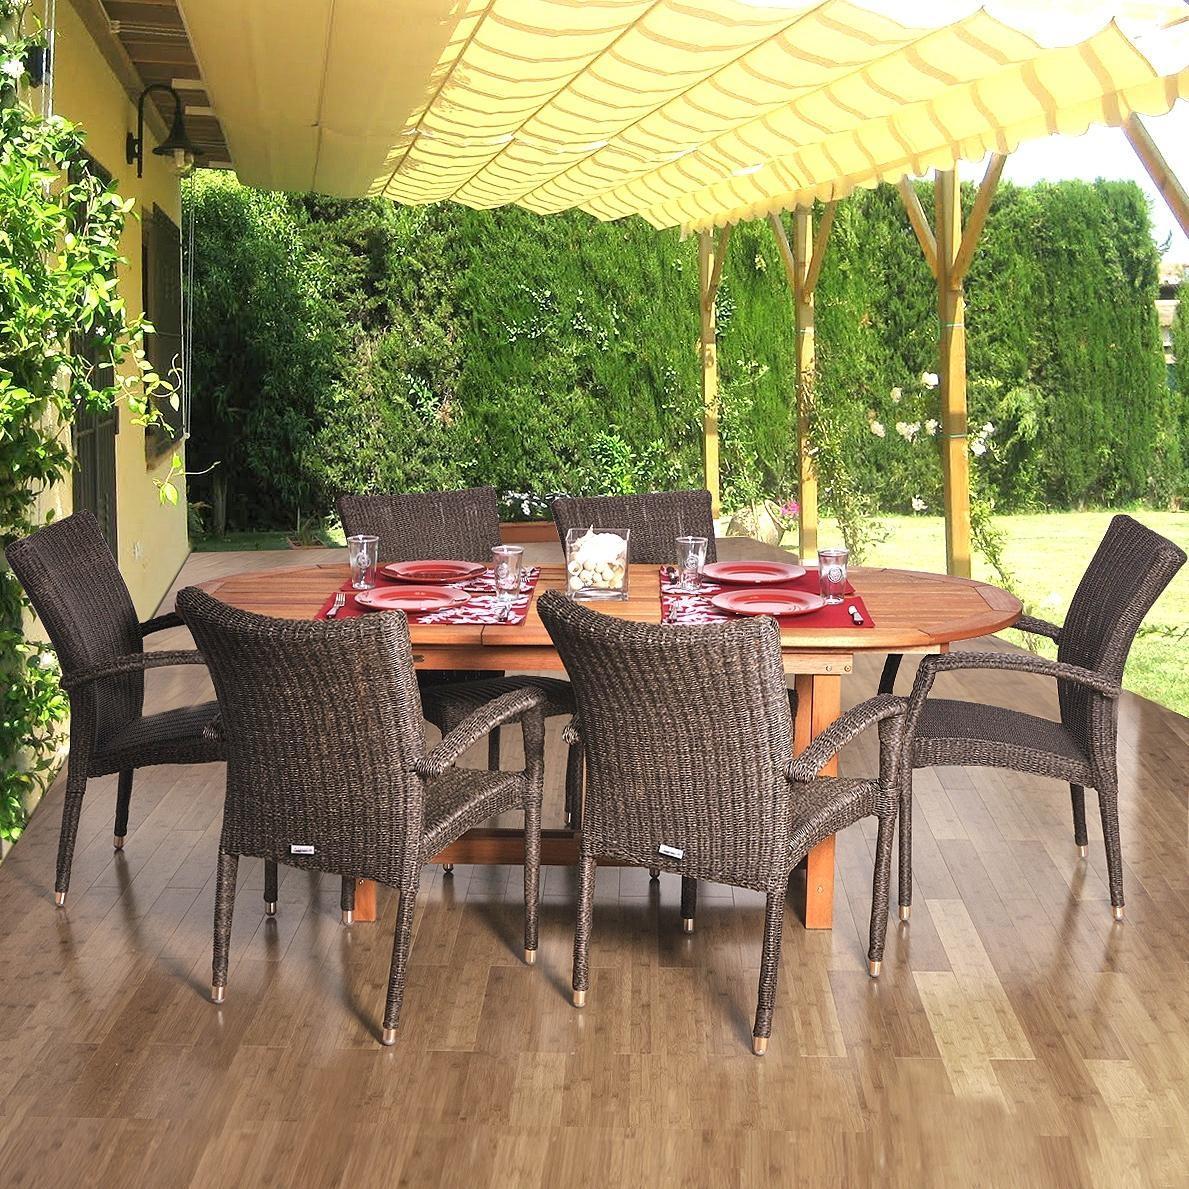 Amazonia Lemans Deluxe 6-Person Resin Wicker Patio Dining Set With Extension Table And Stacking Chairs 2866258